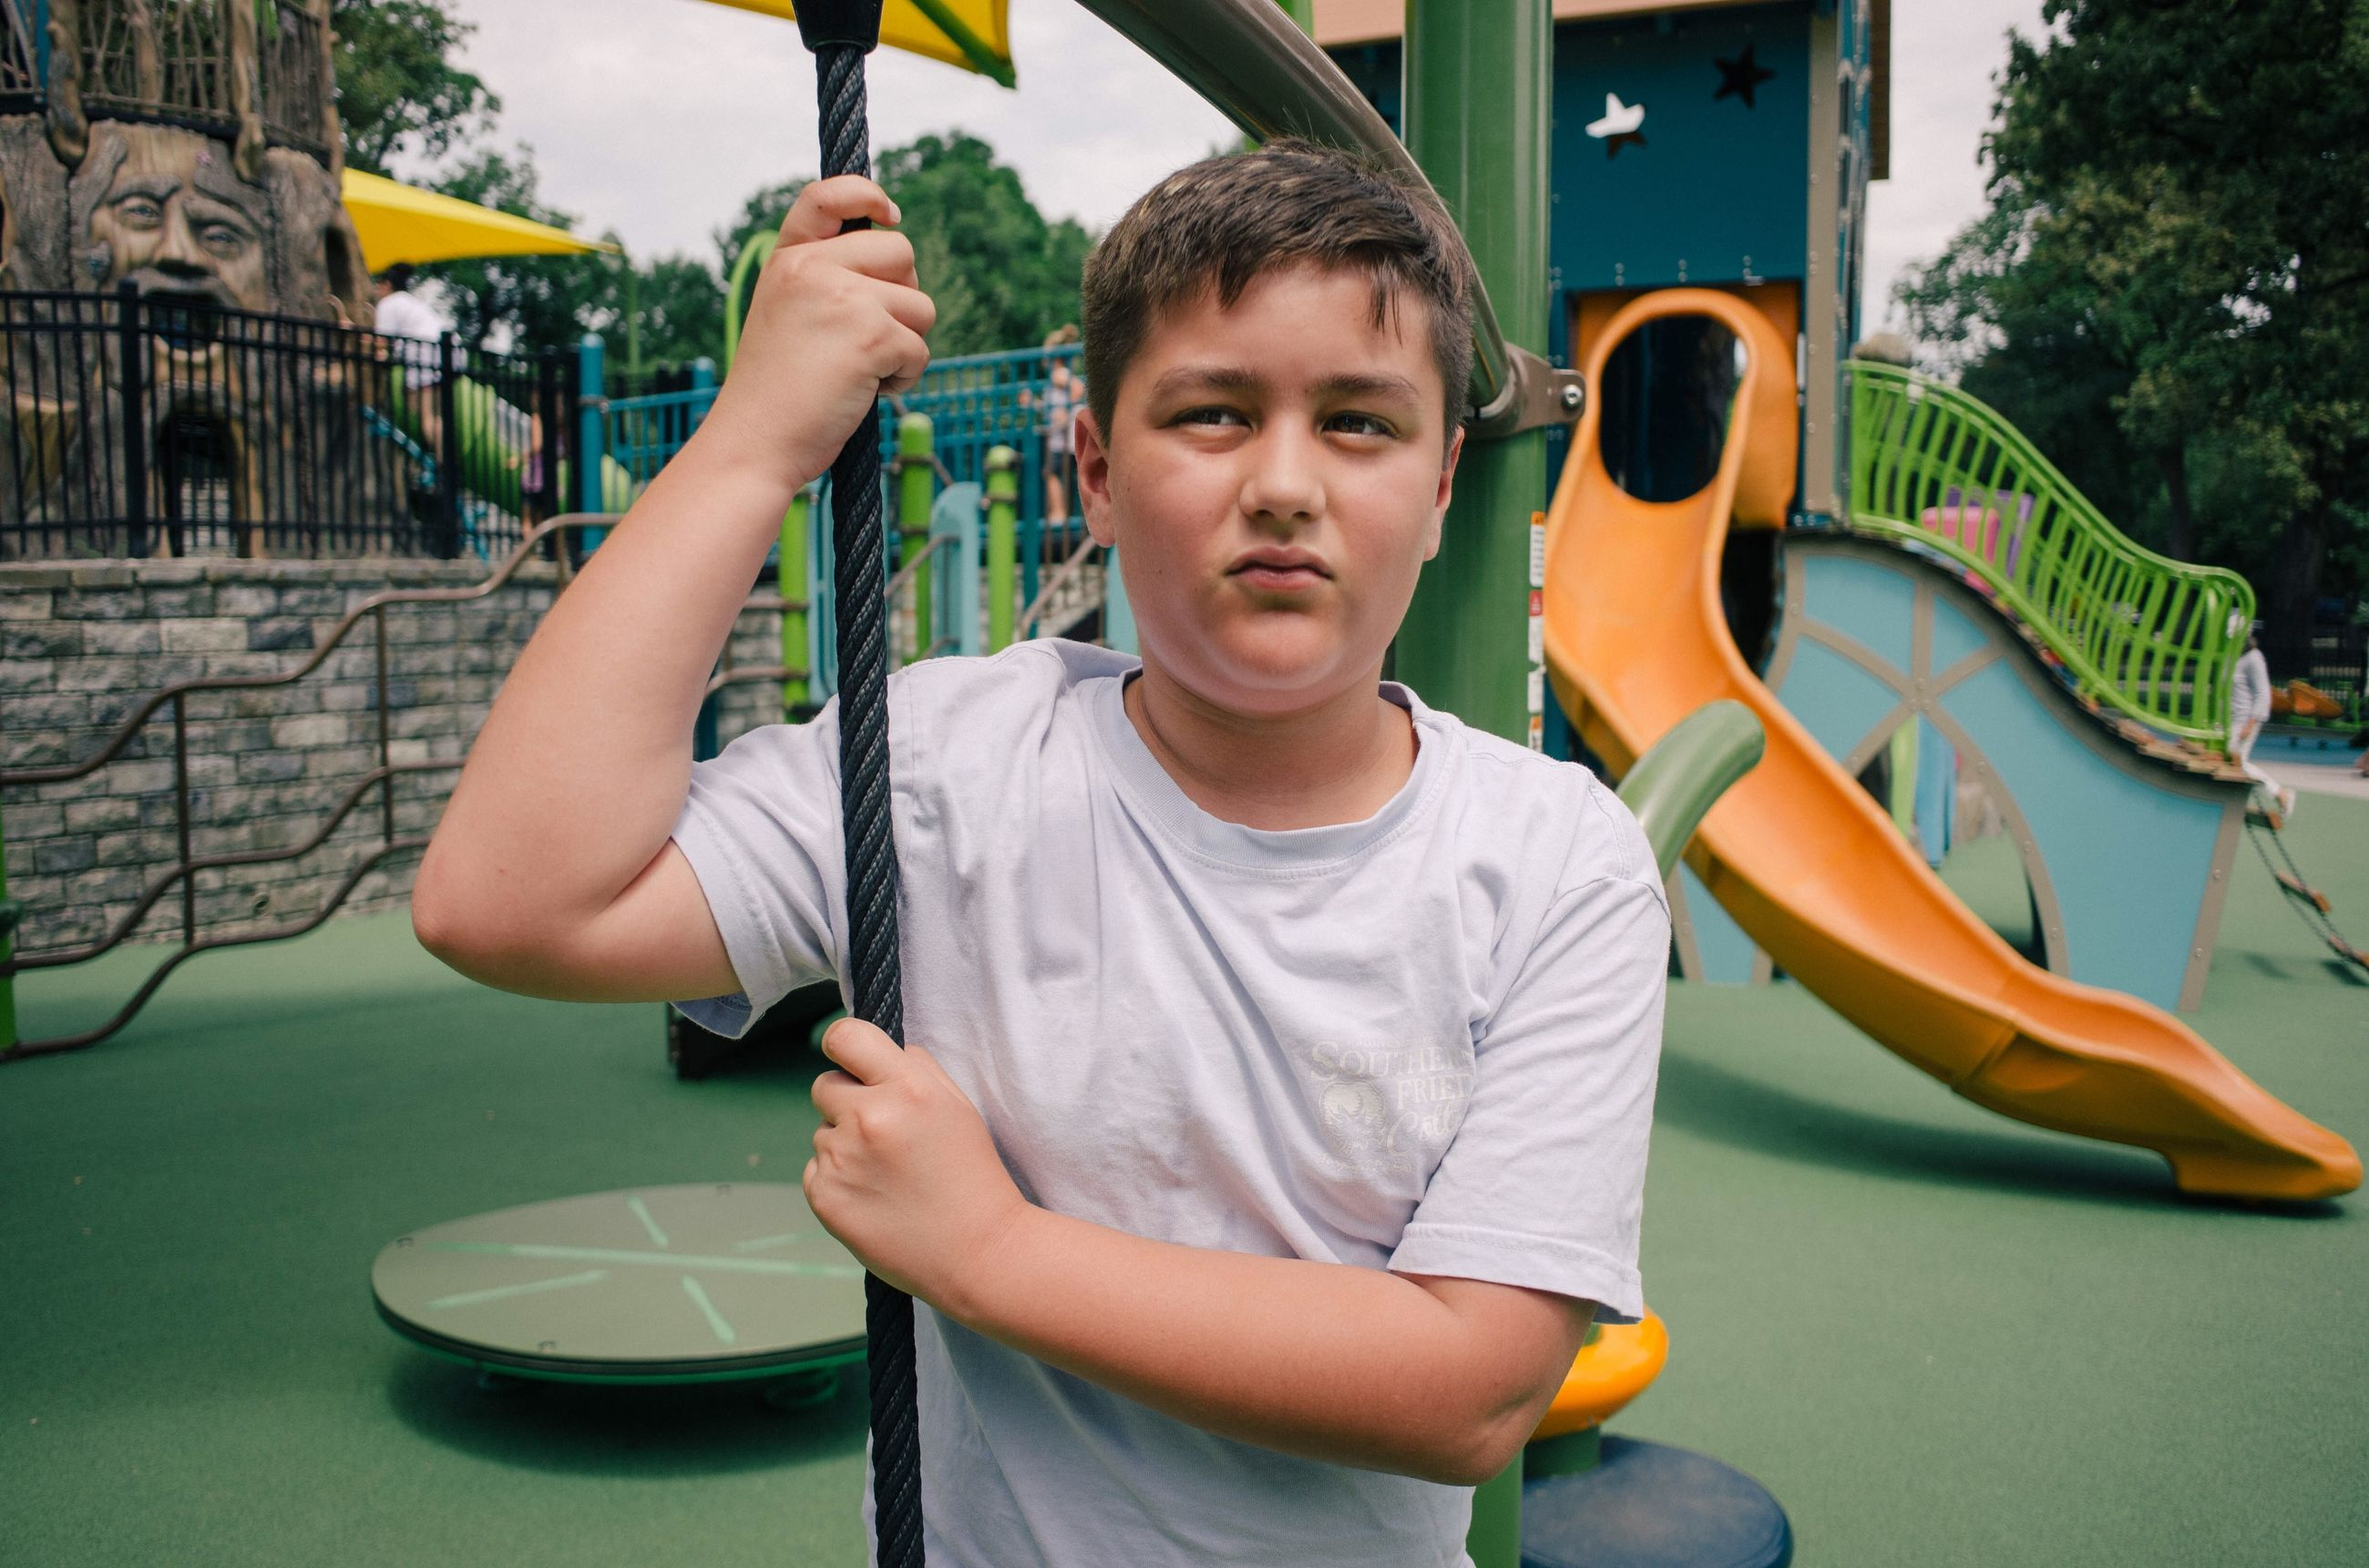 one person, real people, boys, child, front view, leisure activity, childhood, lifestyles, men, males, casual clothing, portrait, waist up, day, holding, playing, looking at camera, innocence, outdoor play equipment